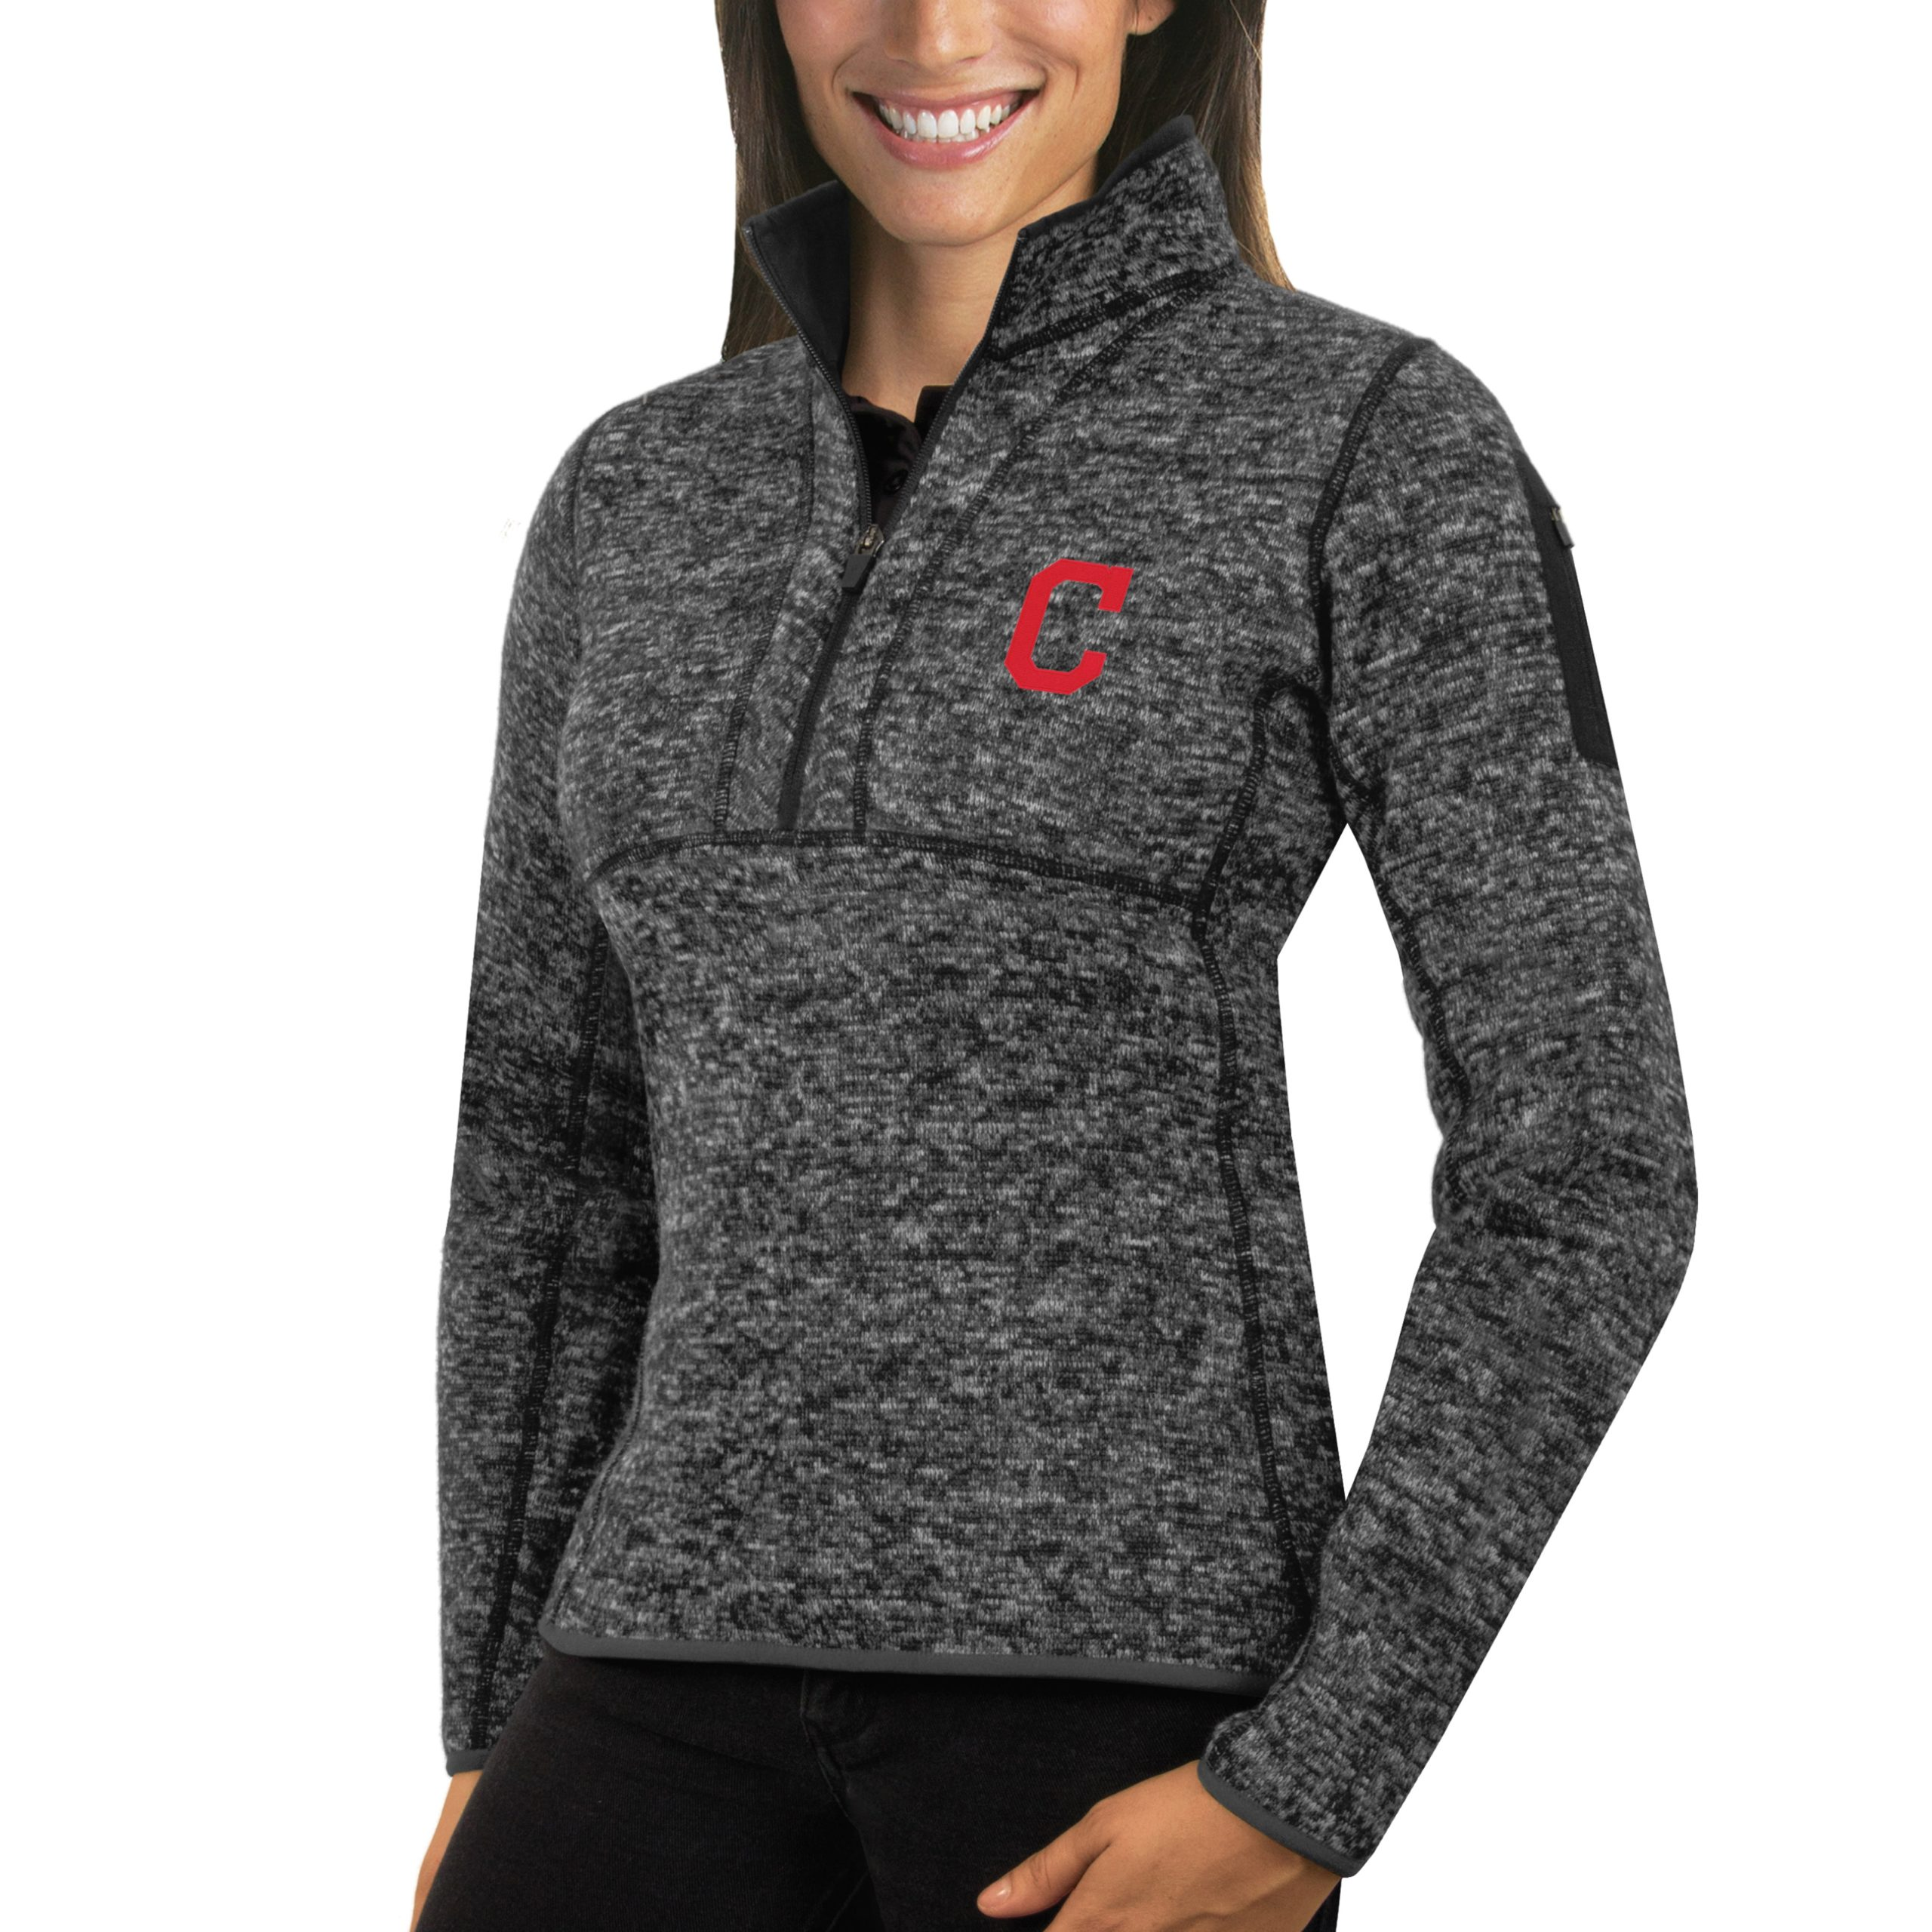 Cleveland Indians Antigua Women's Fortune Half-Zip Pullover Sweater - Heathered Charcoal